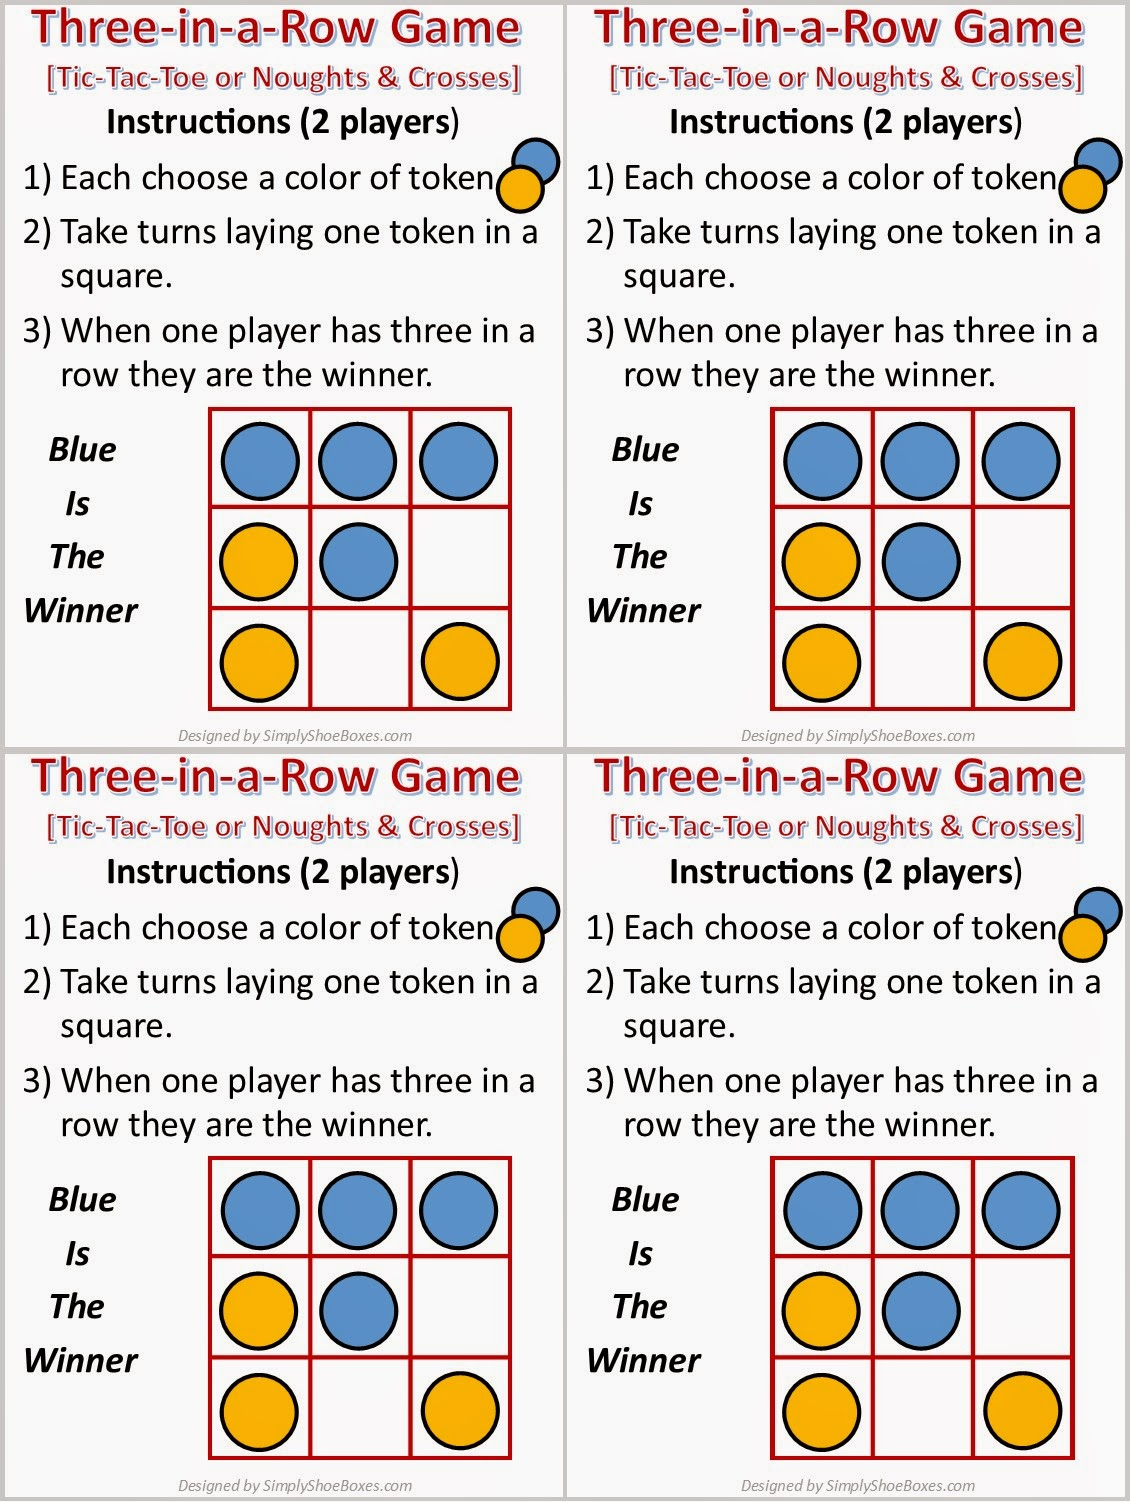 Tiic-Tac-Toe game instructions sheets to print for OCC shoeboxes.